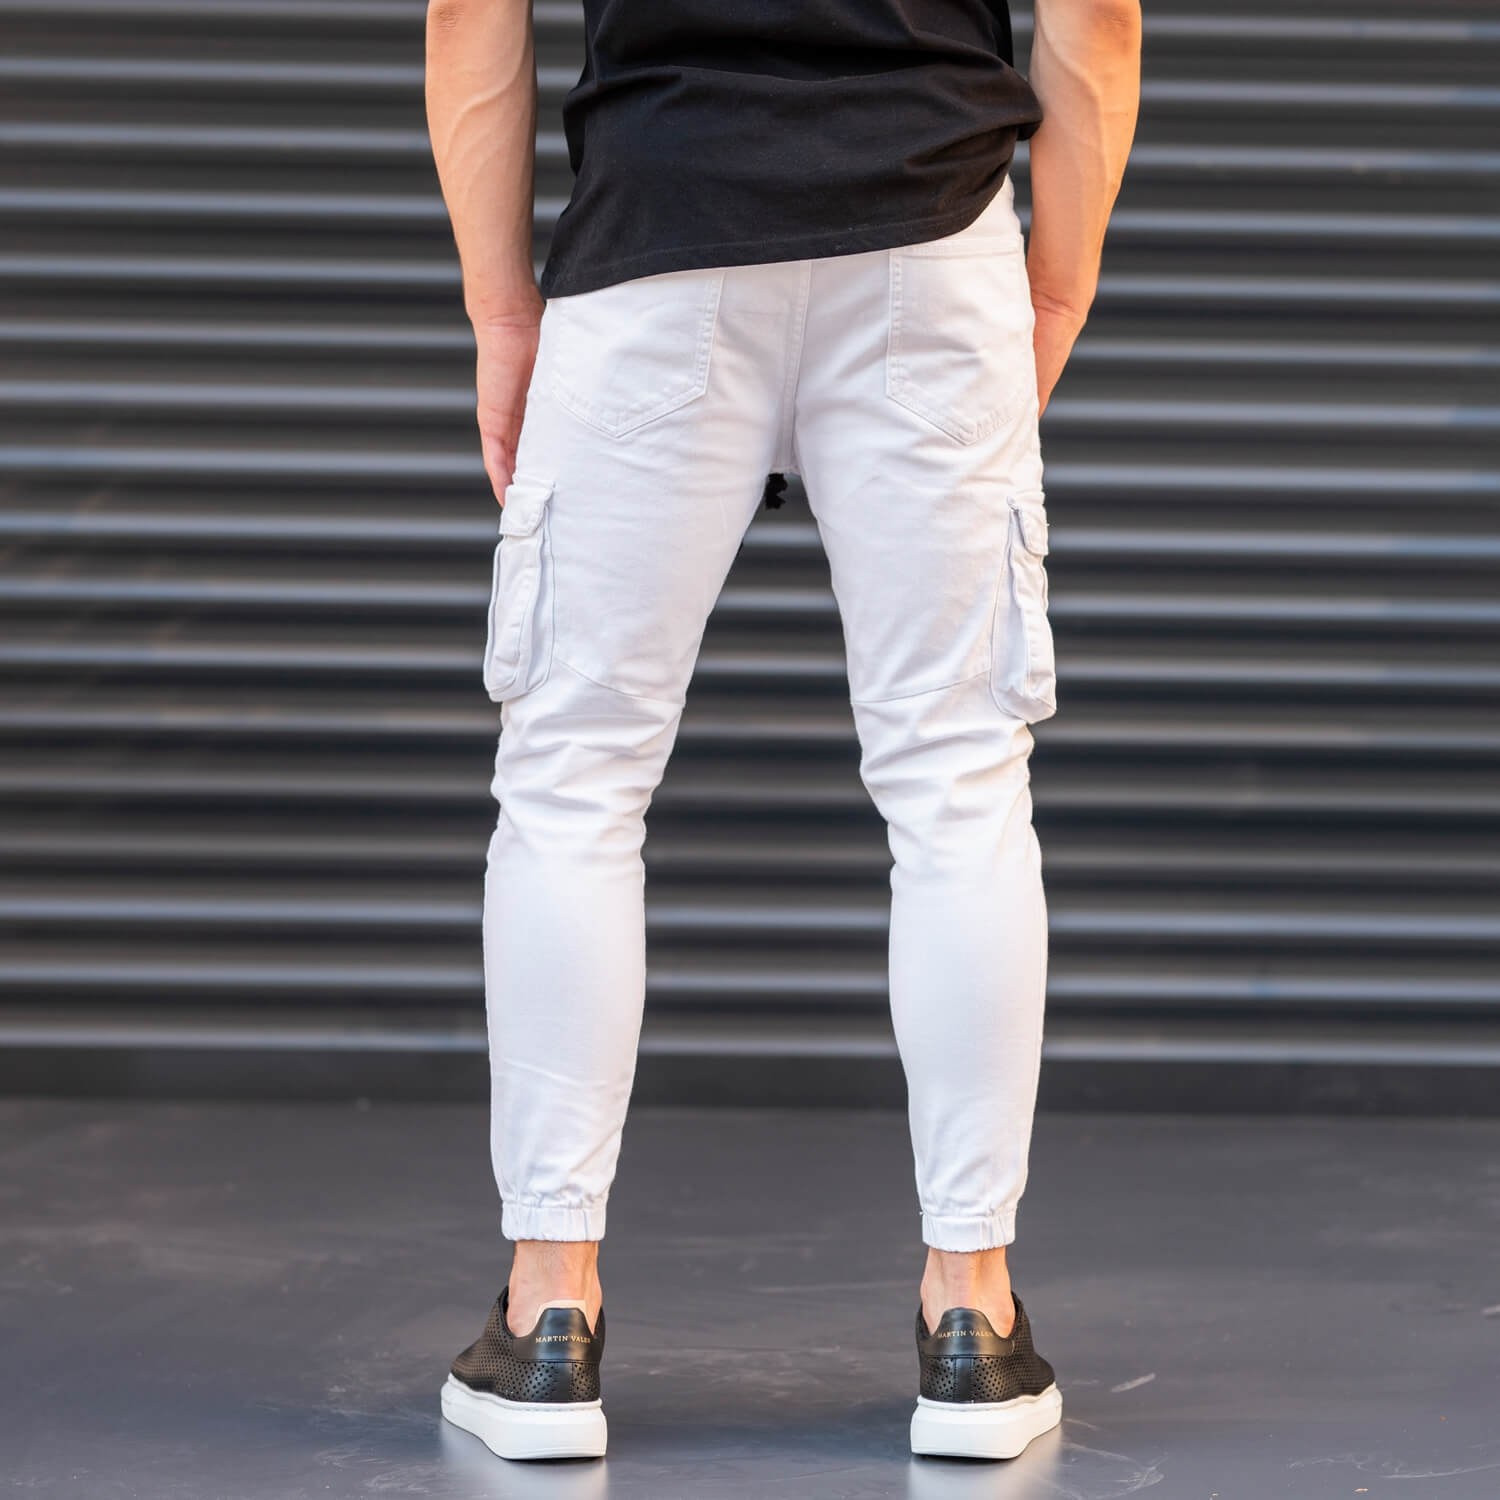 Men's Jeans with Pockets Style in White